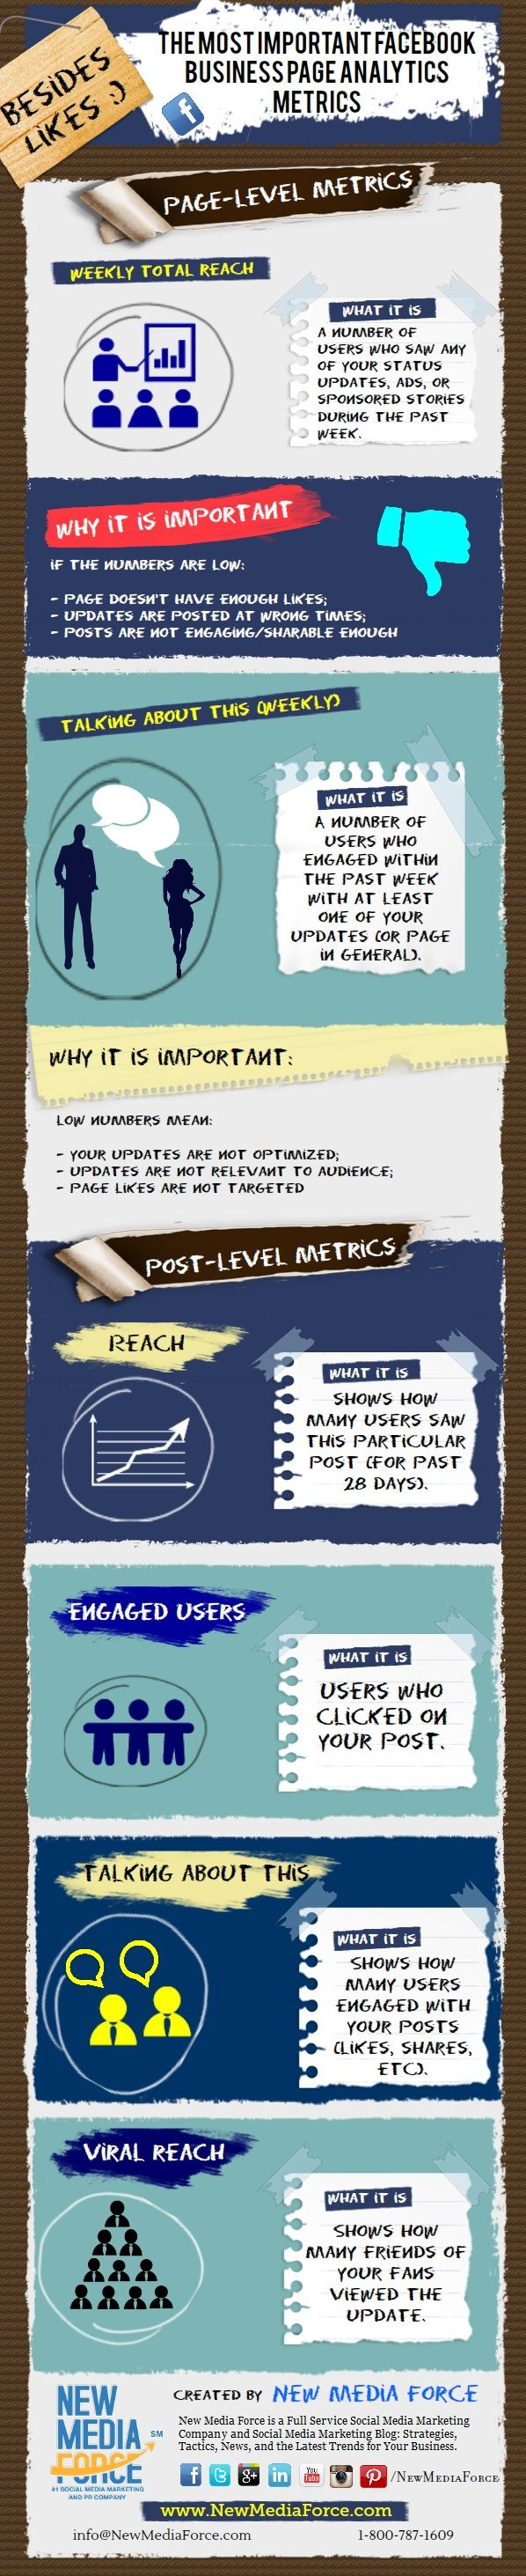 #Infographic: The Most important #Facebook #Business Page #Analytics Metrics (besides likes):  #socialmedia #SMM #socialmediamarketing #digitalmarketing #digital #social